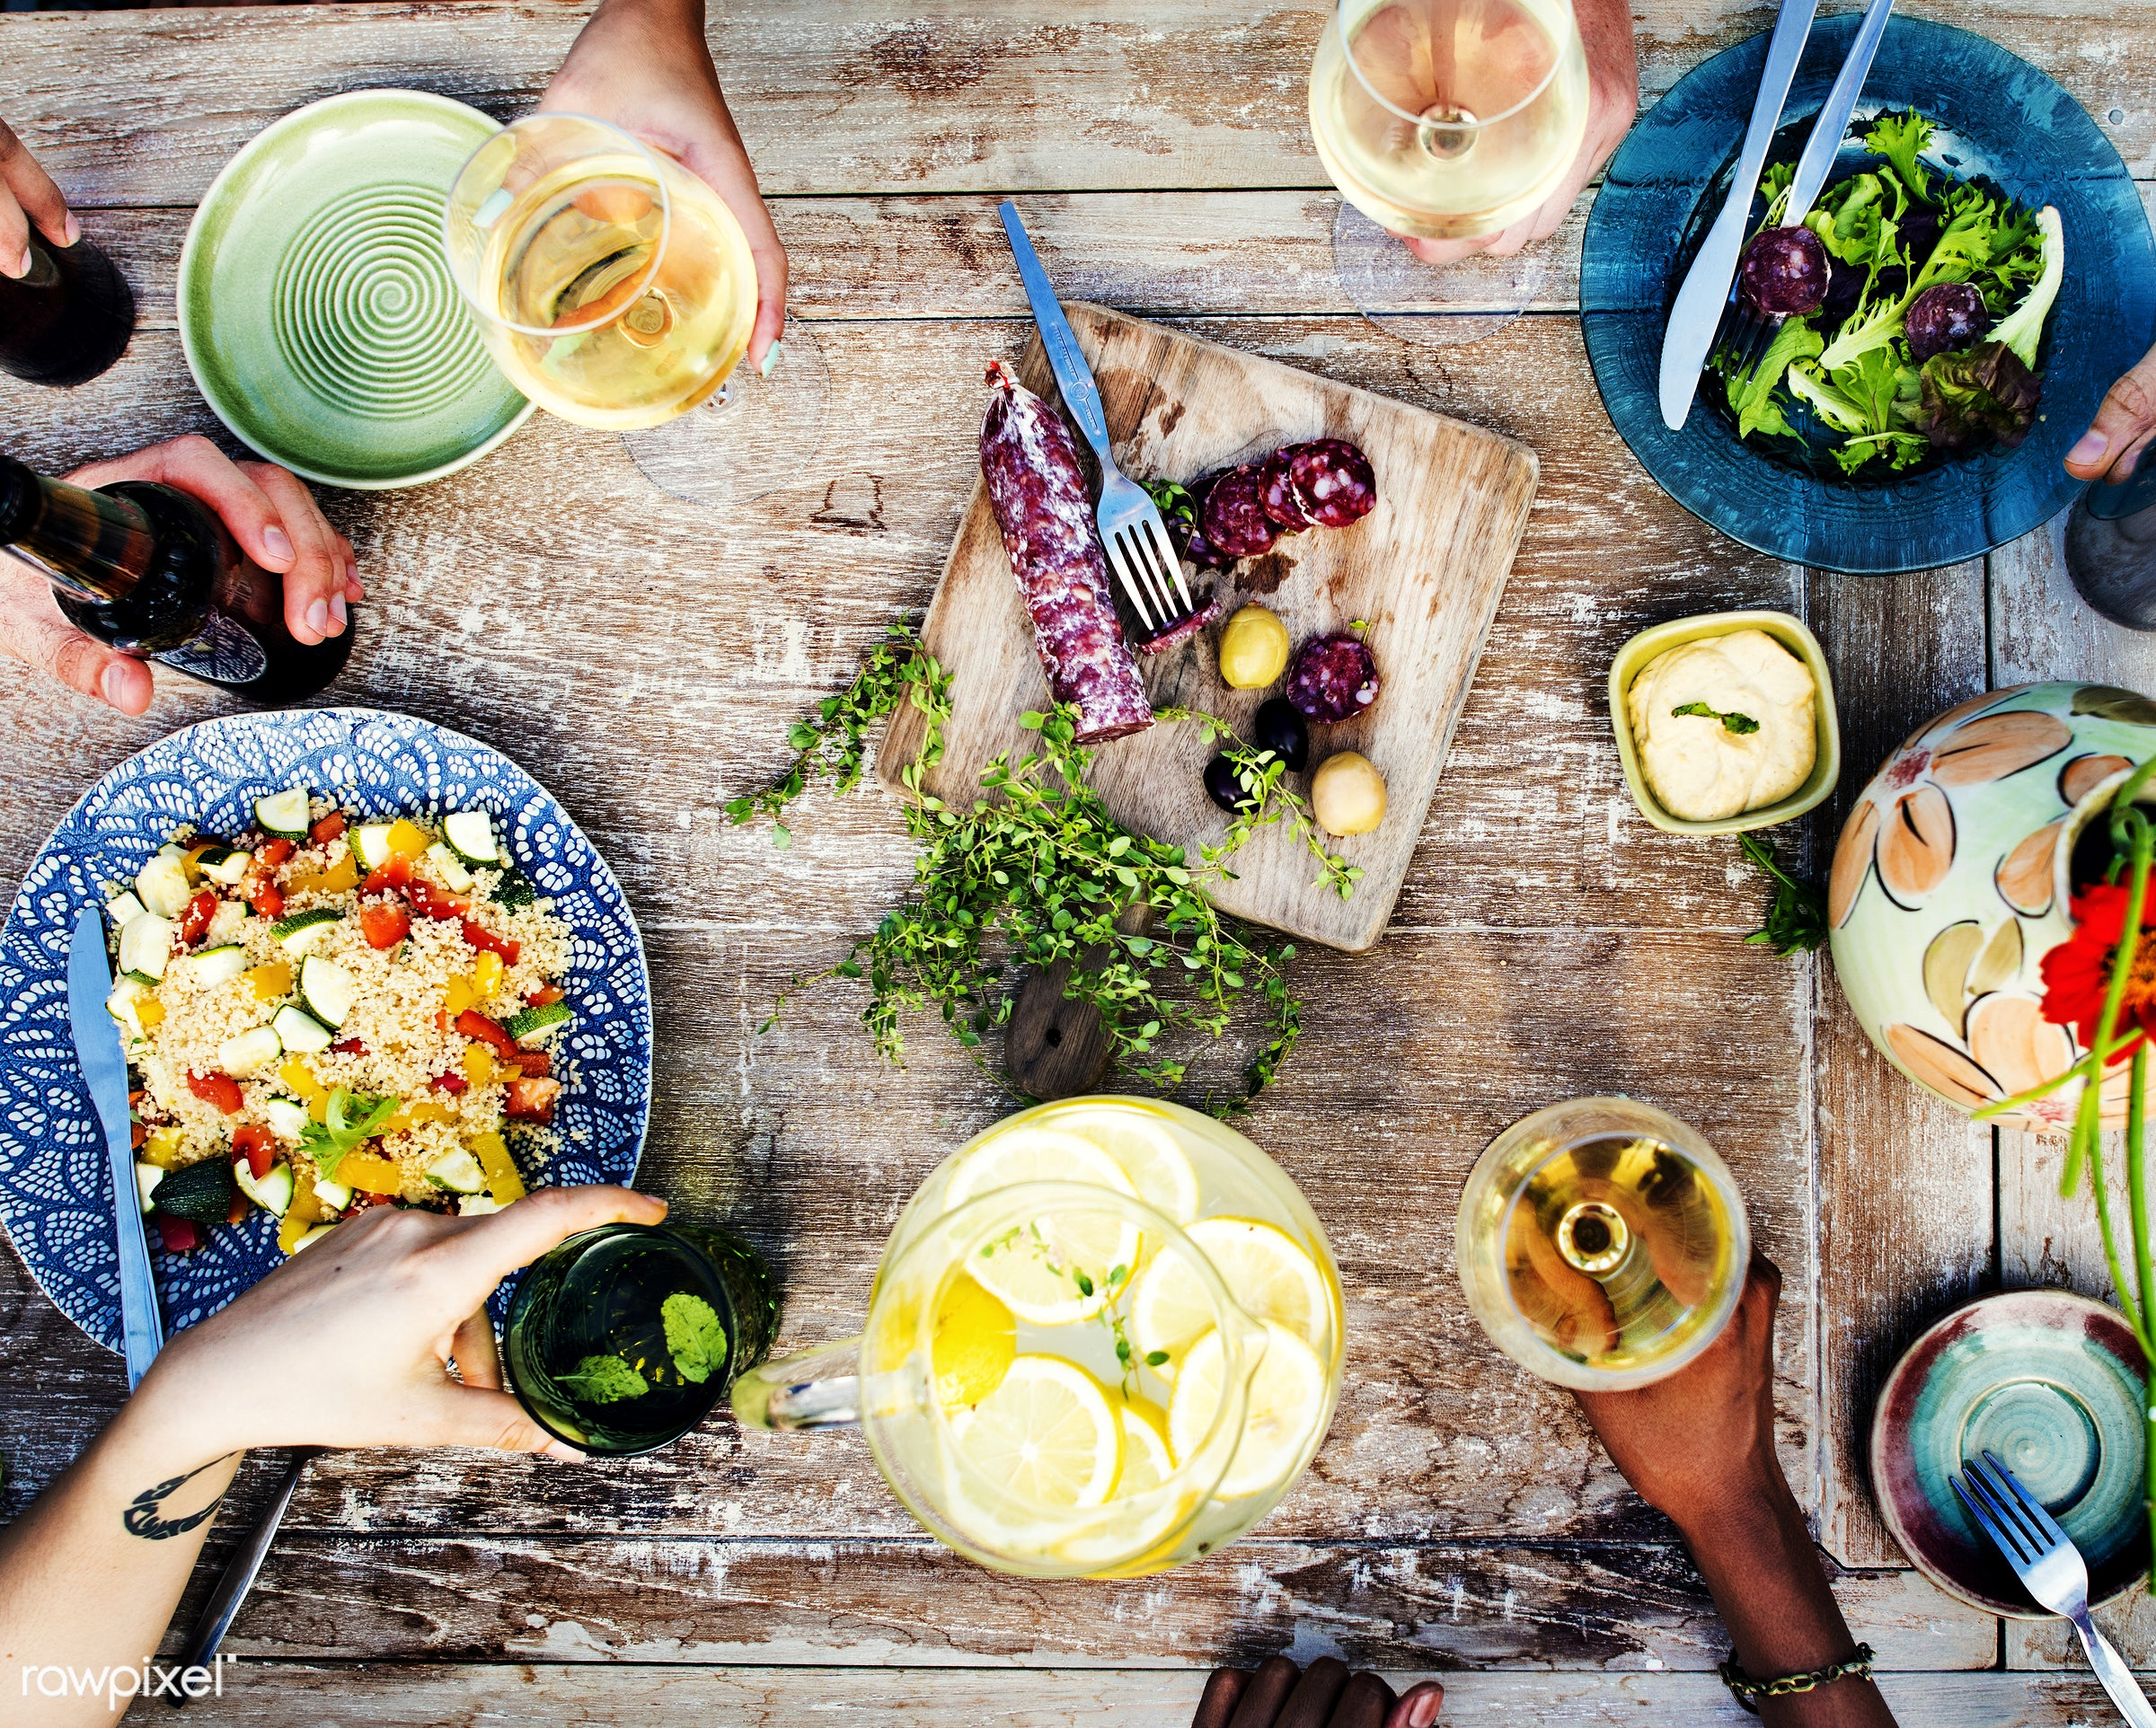 taste, aerial view, allspice, beer, beverage, bowl, champagne, color, colorful, cook, cuisine, delicious, dinner, drink,...